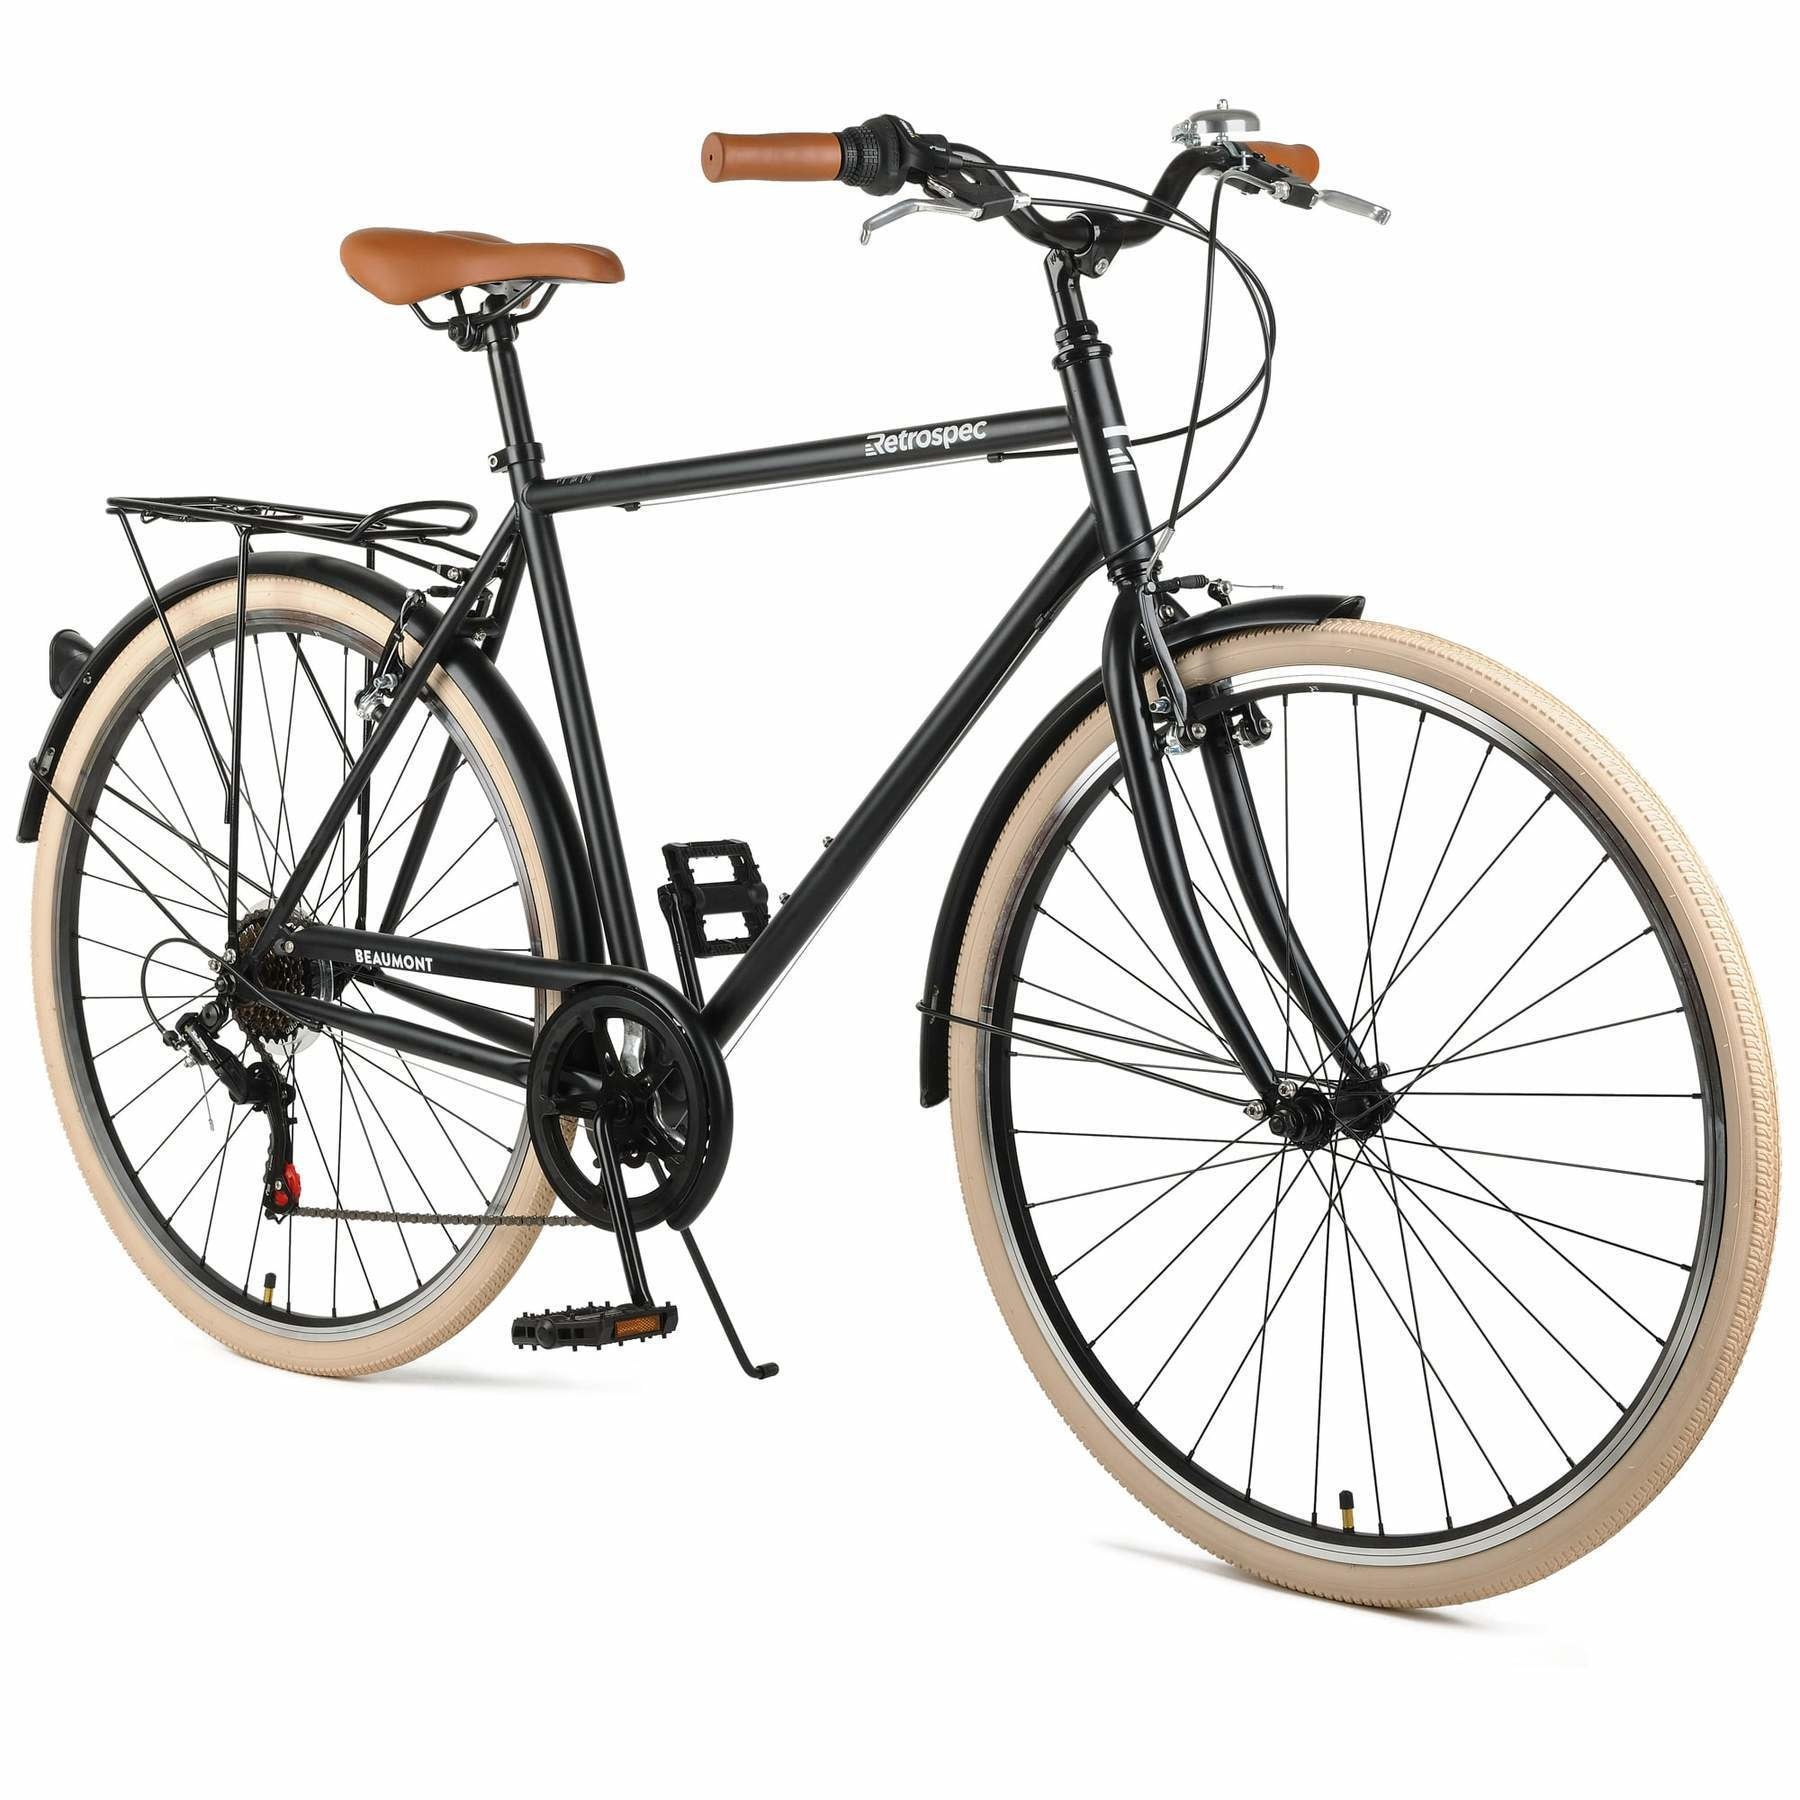 Retrospec Retrospec Beaumont 7sp Matte Black 50 cm